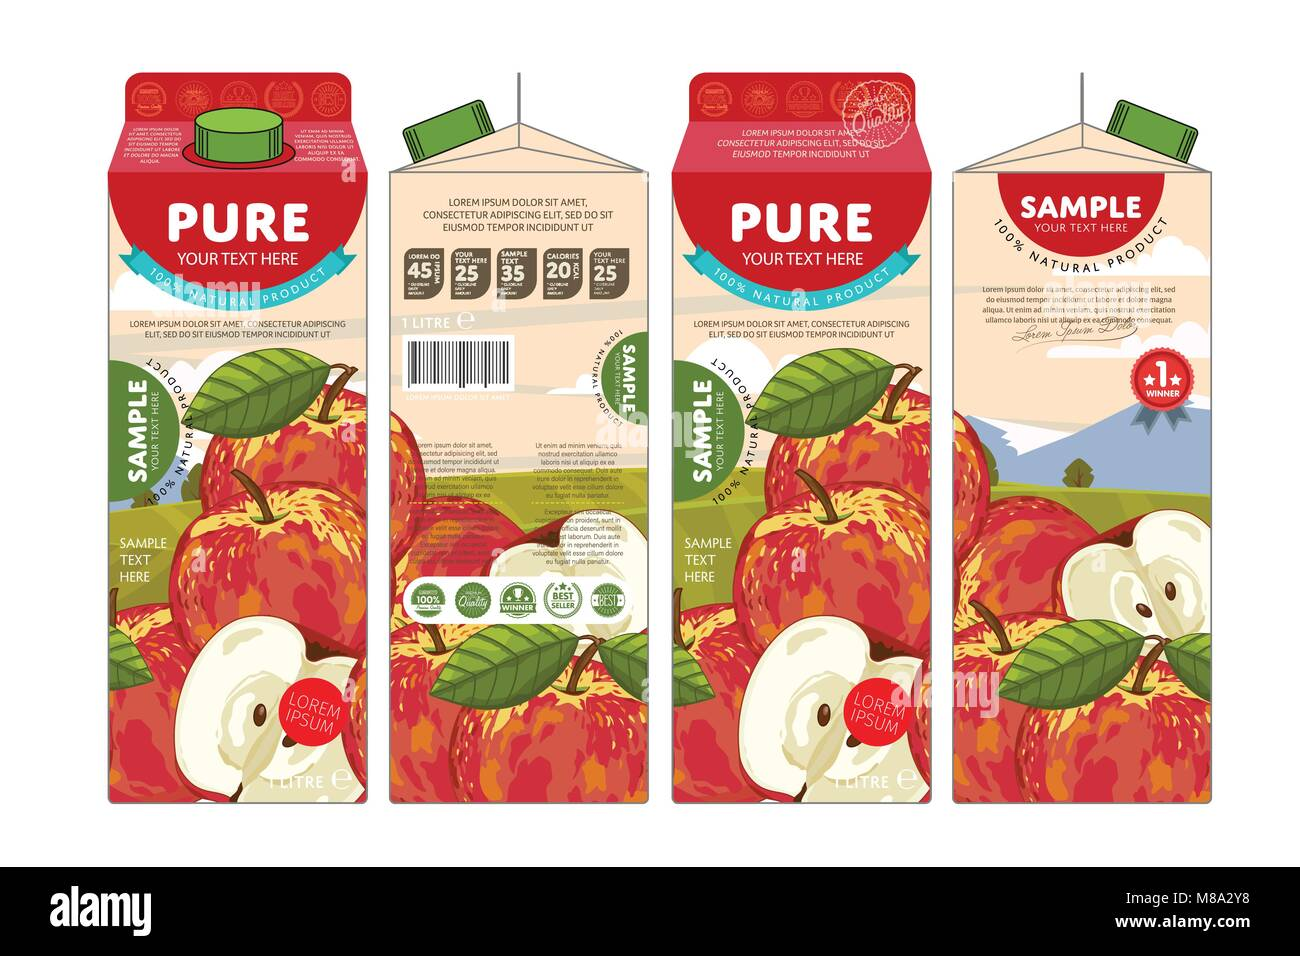 Template Packaging Design Apple Juice - Stock Image